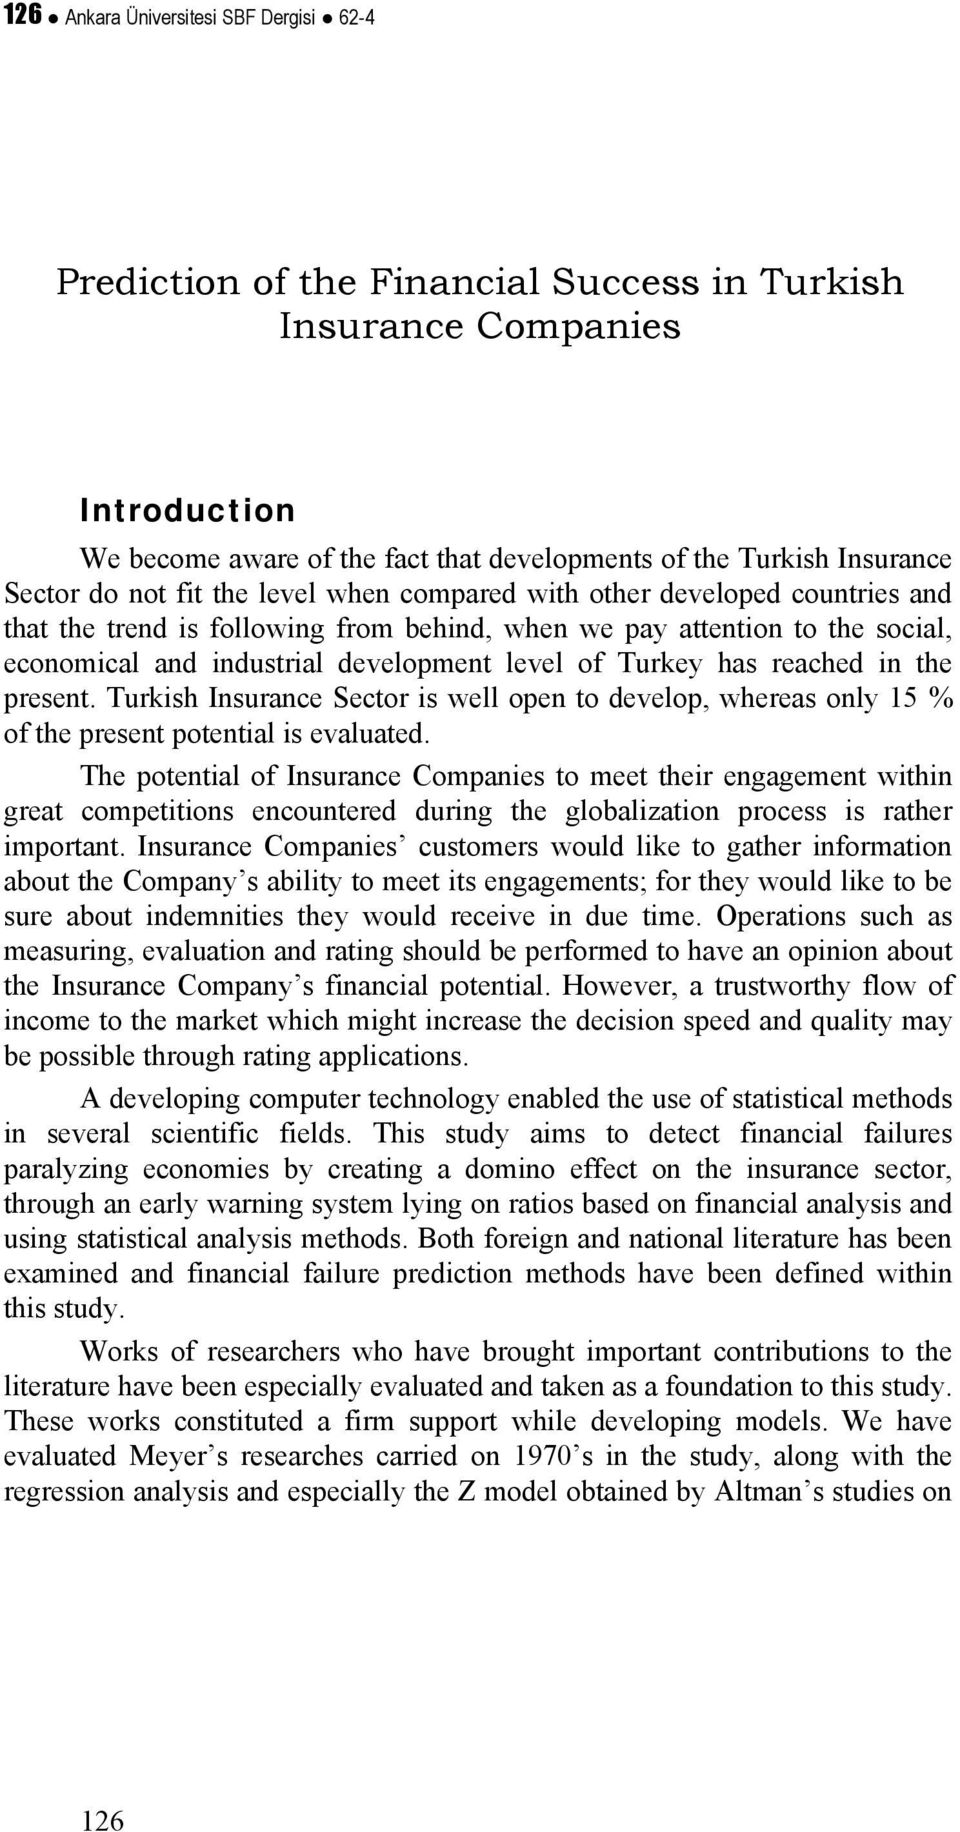 Turkey has reached in the present. Turkish Insurance Sector is well open to develop, whereas only 15 % of the present potential is evaluated.